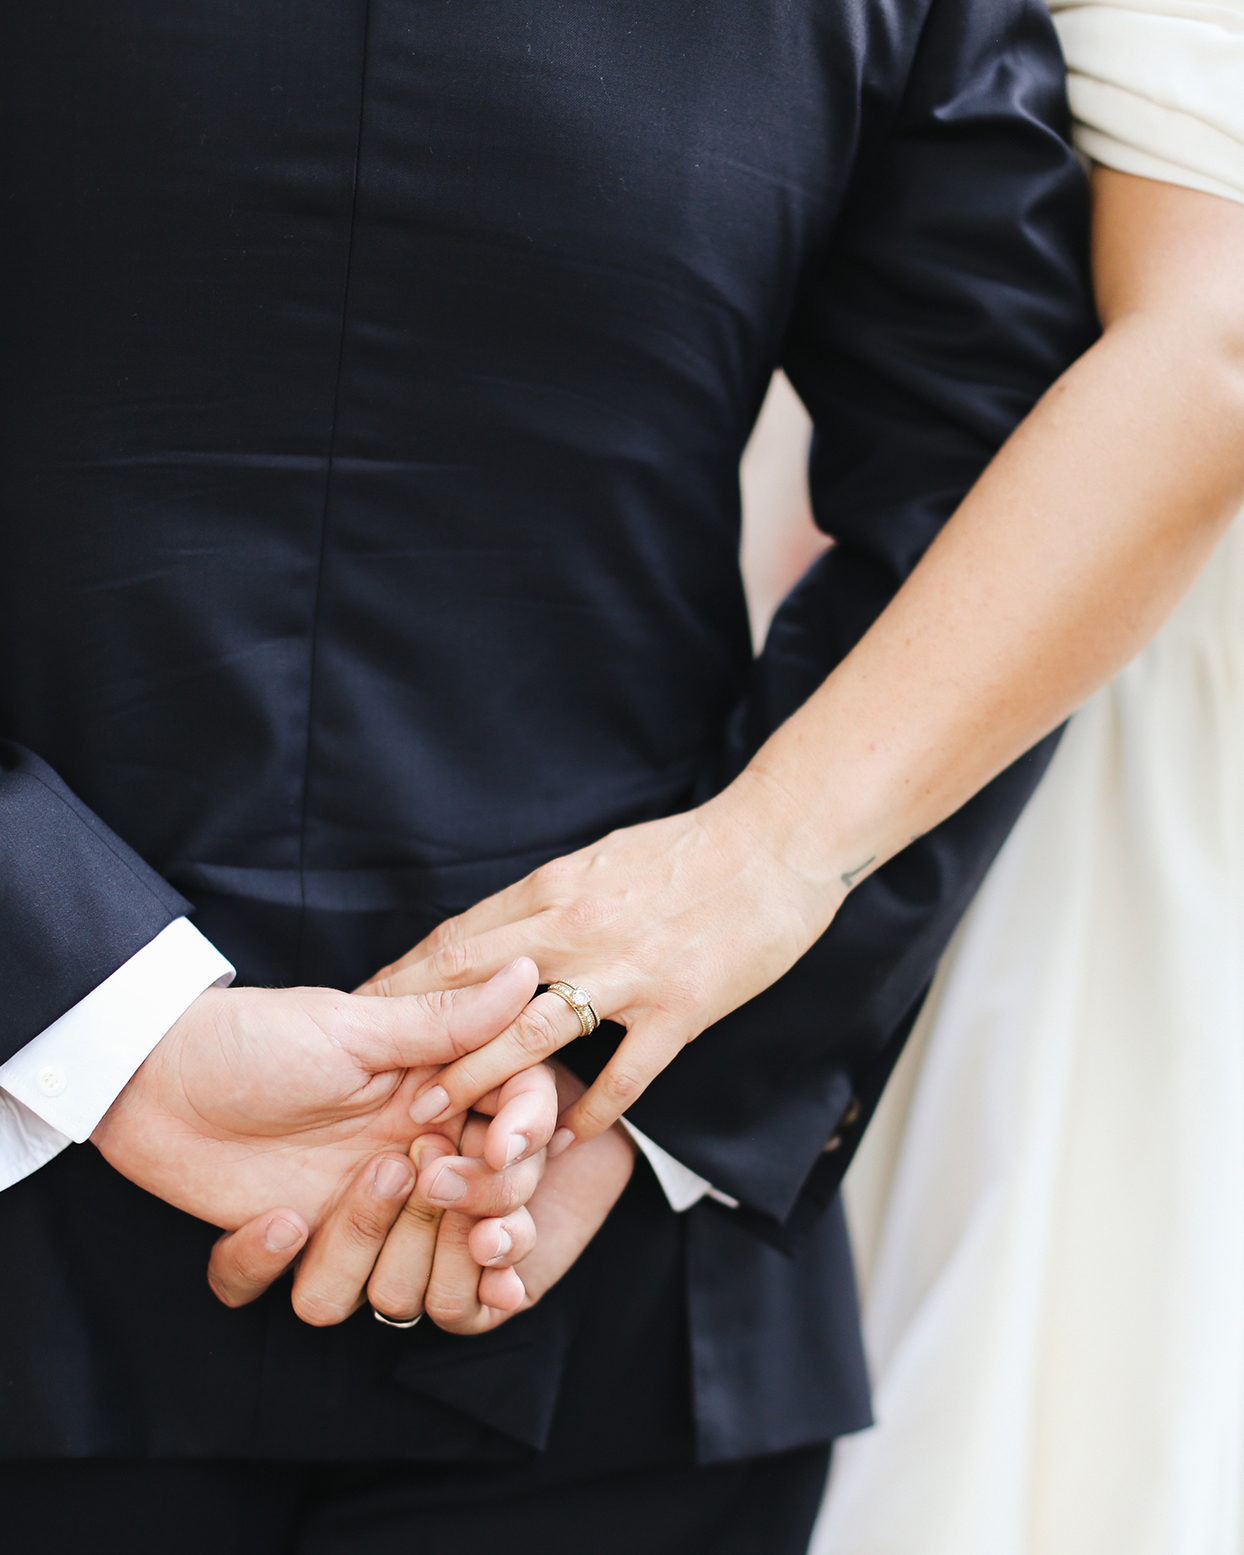 pia davide wedding couple hands with rings